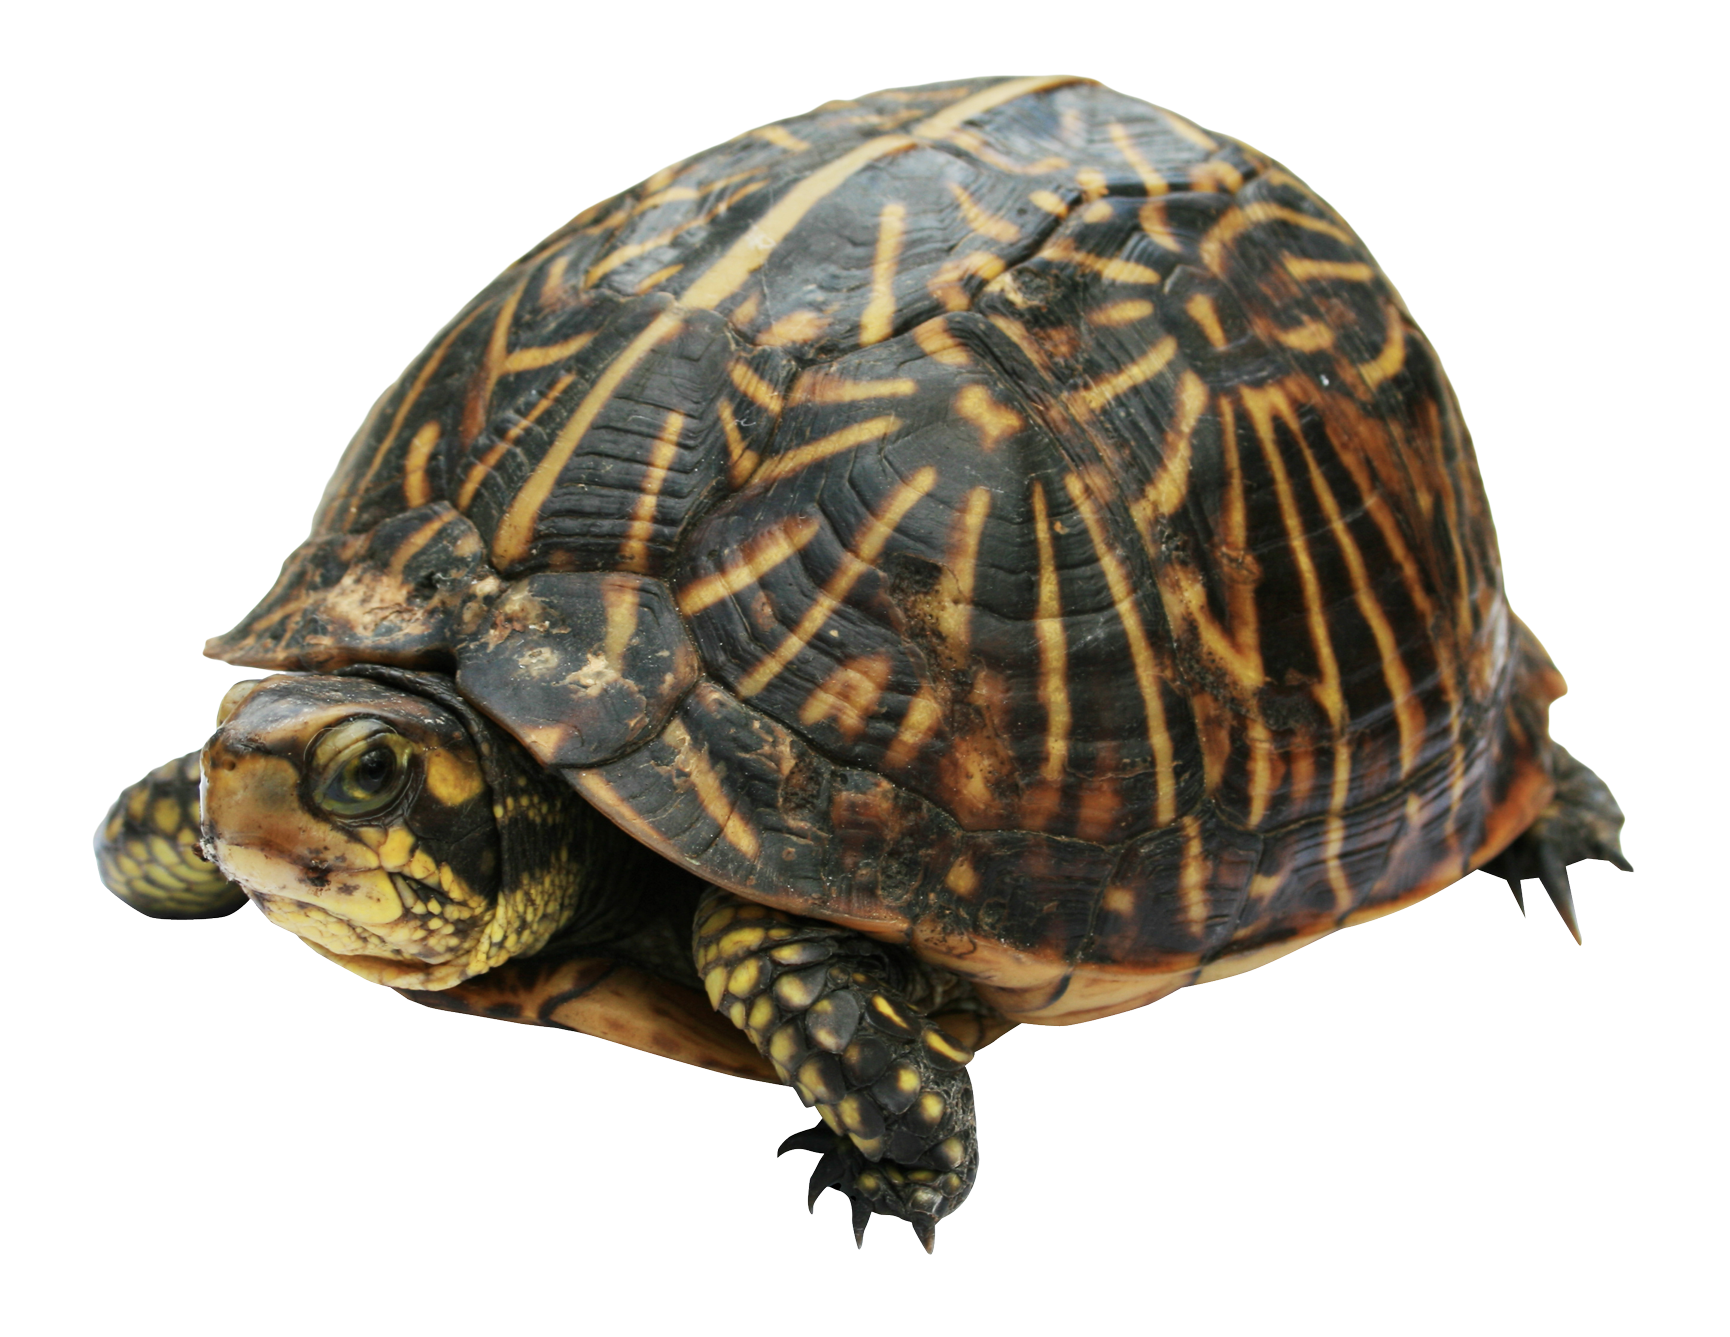 Png turtle. Images free download